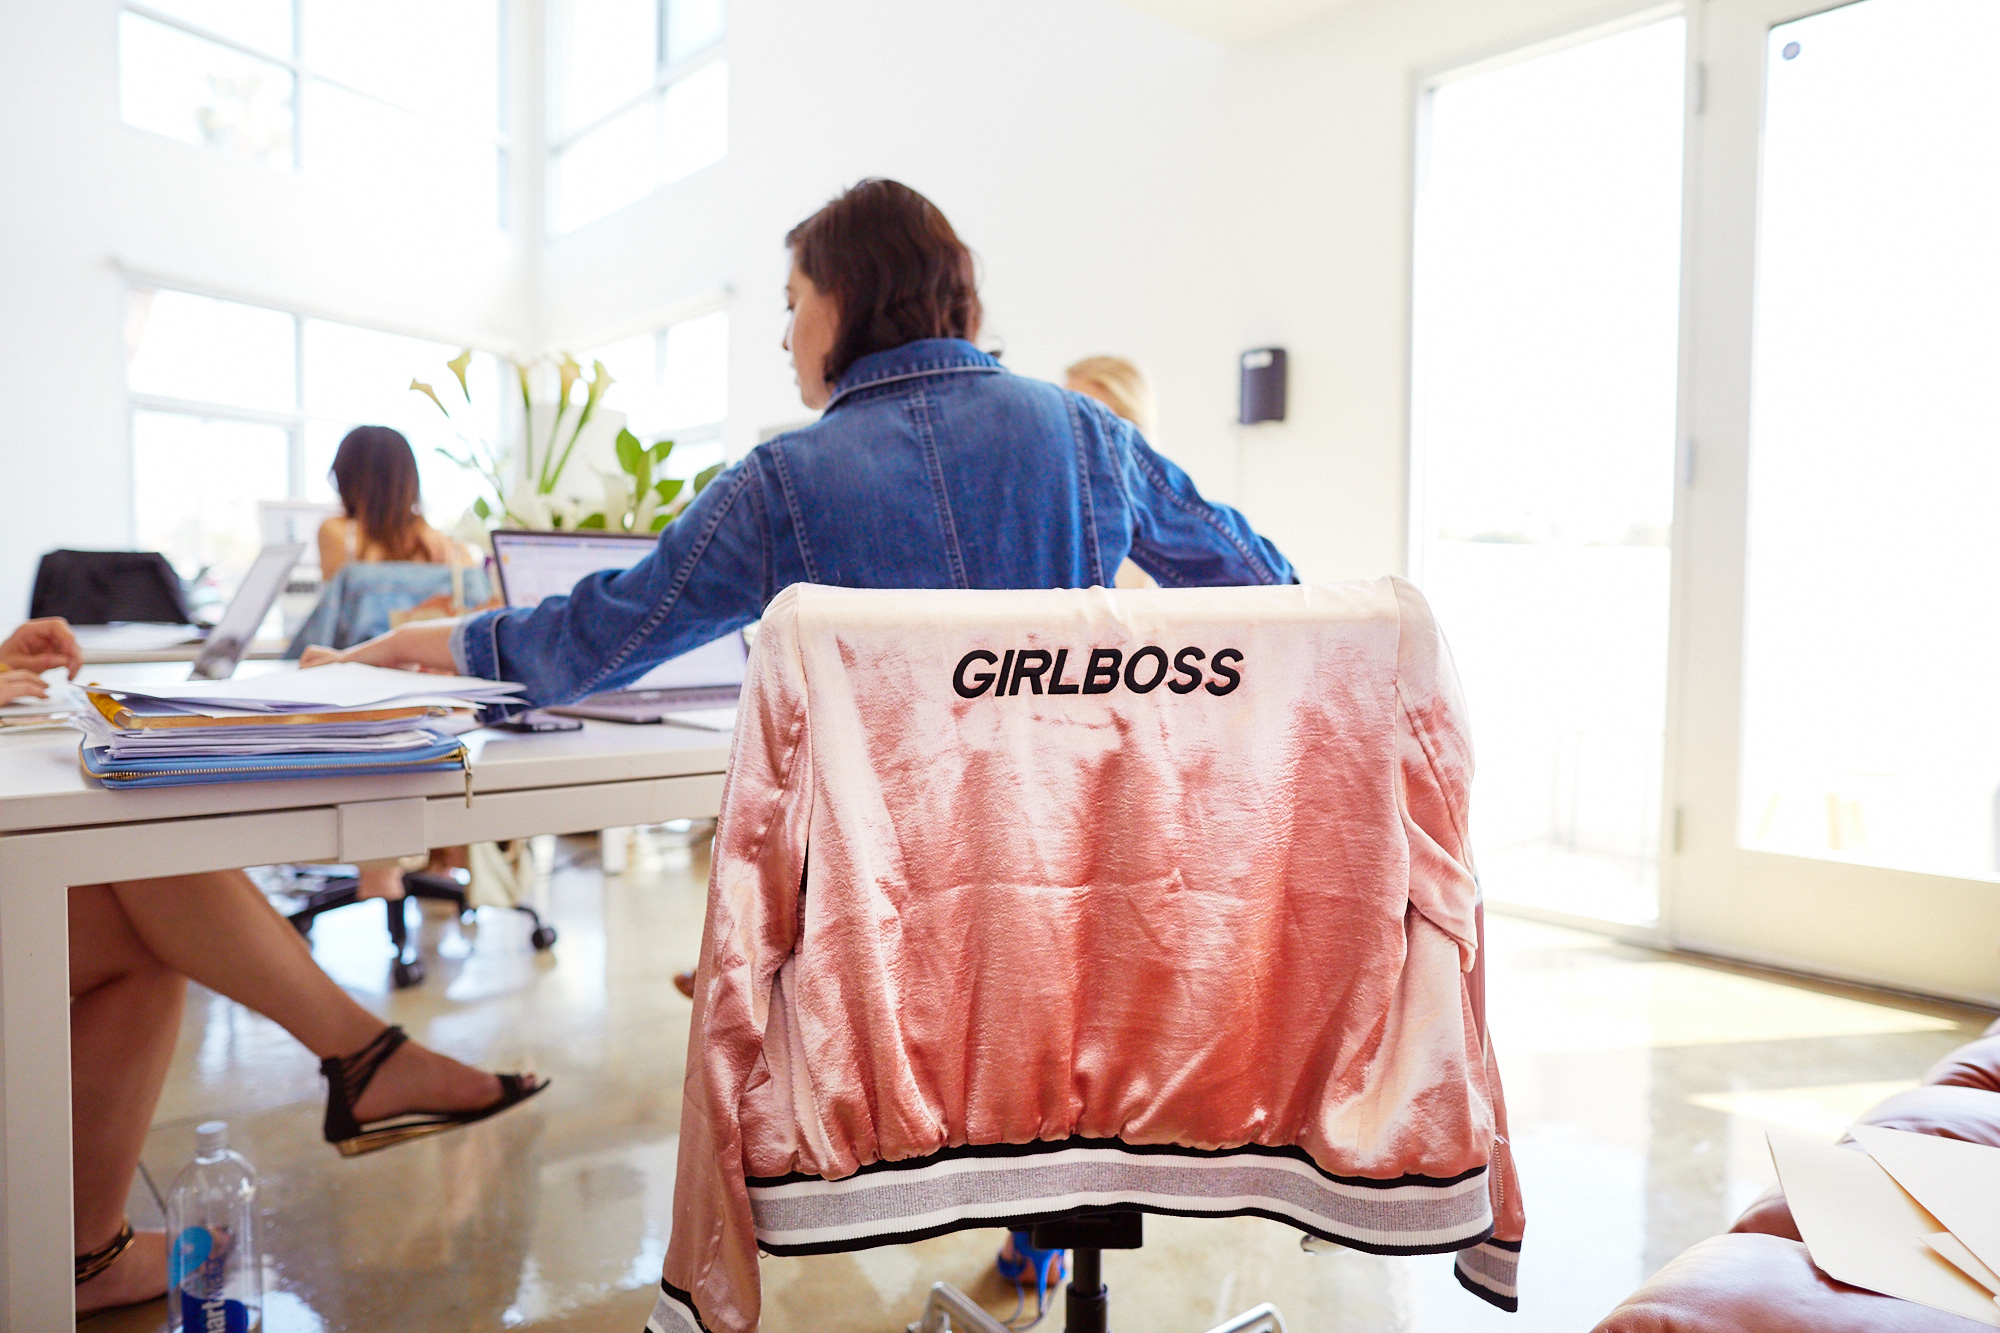 Joe Marchese's Attention Capital acquires Girlboss